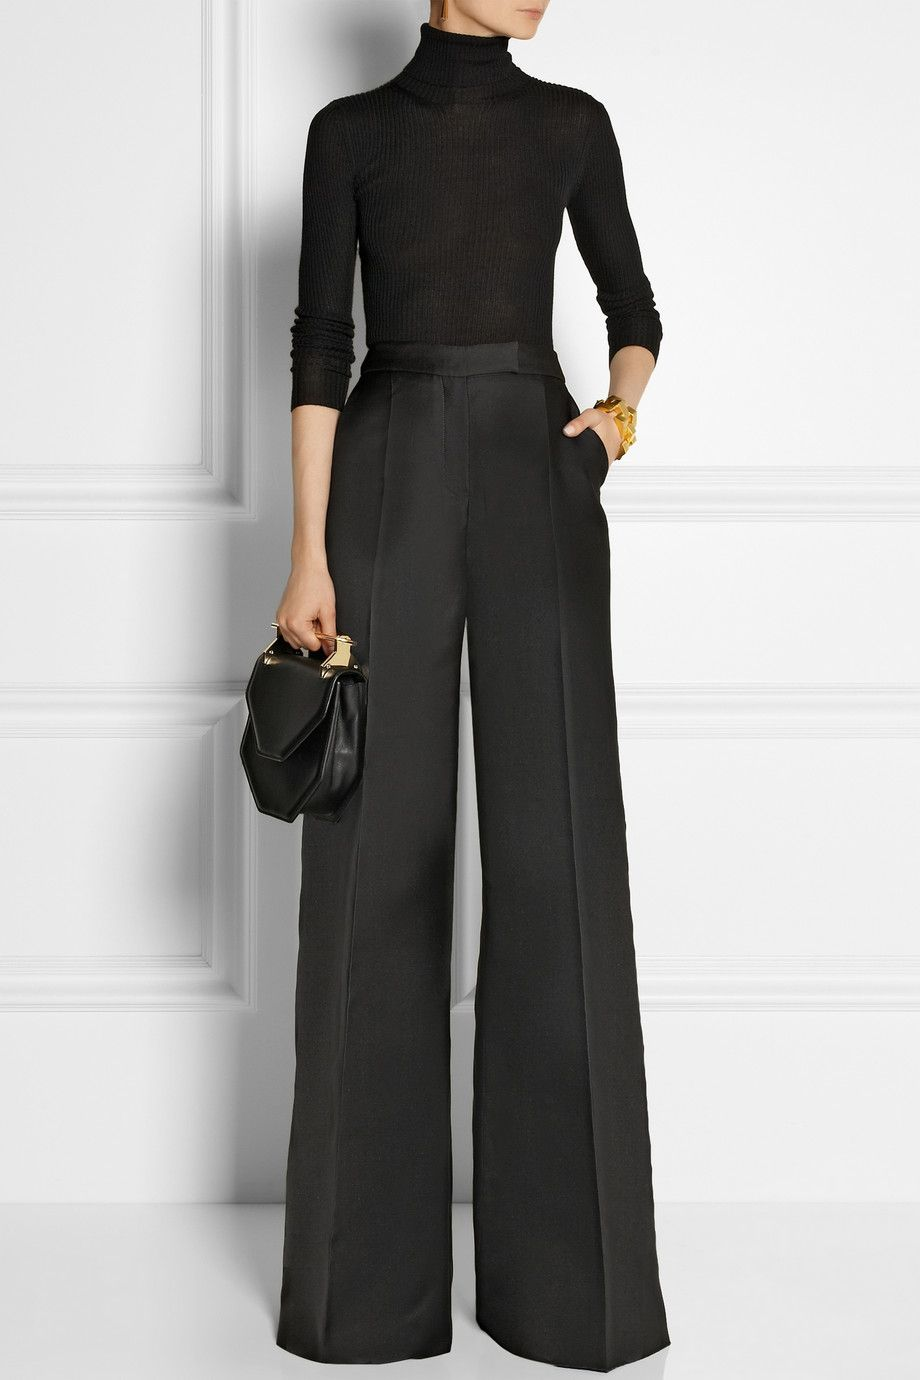 020dee2186 Antonio Berardi | Satin wide-leg pants | loving the black/gold elegant look